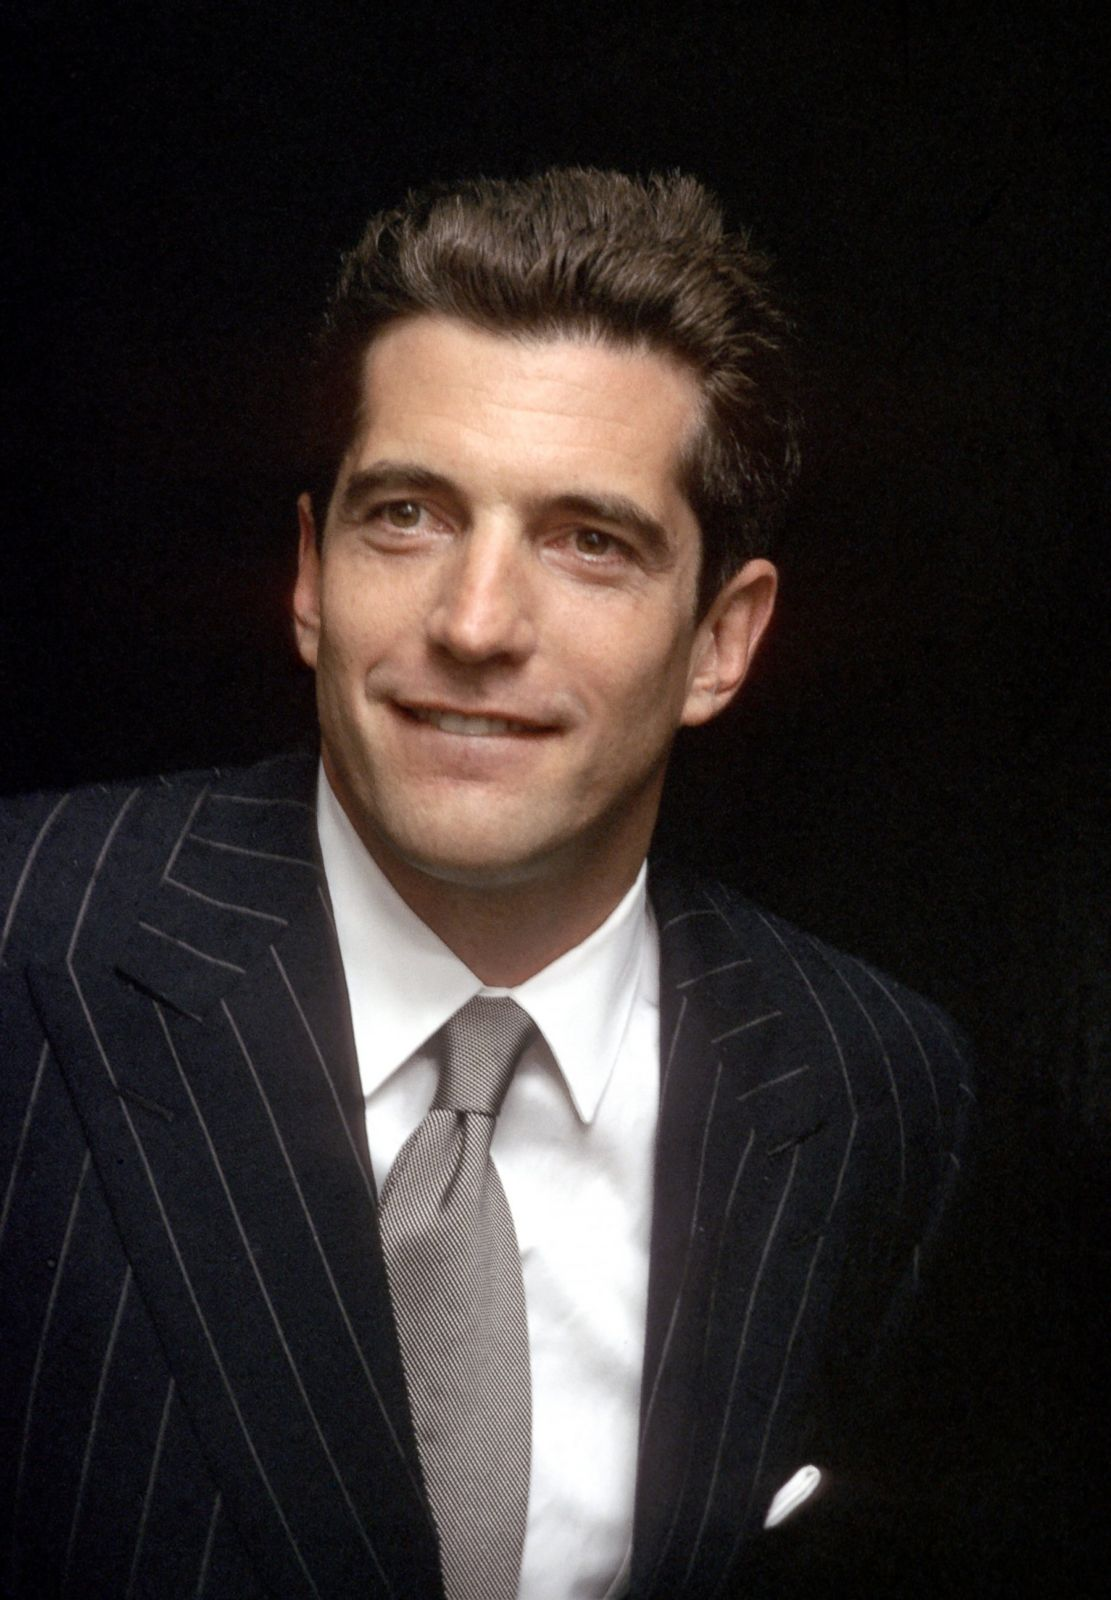 a biography of john f kennedy jr Gr 5 up-the opening chapter of this poignant tribute to america's prince  recounts his last day of life and his tragic death in a plane crash at sea the  ensuing.